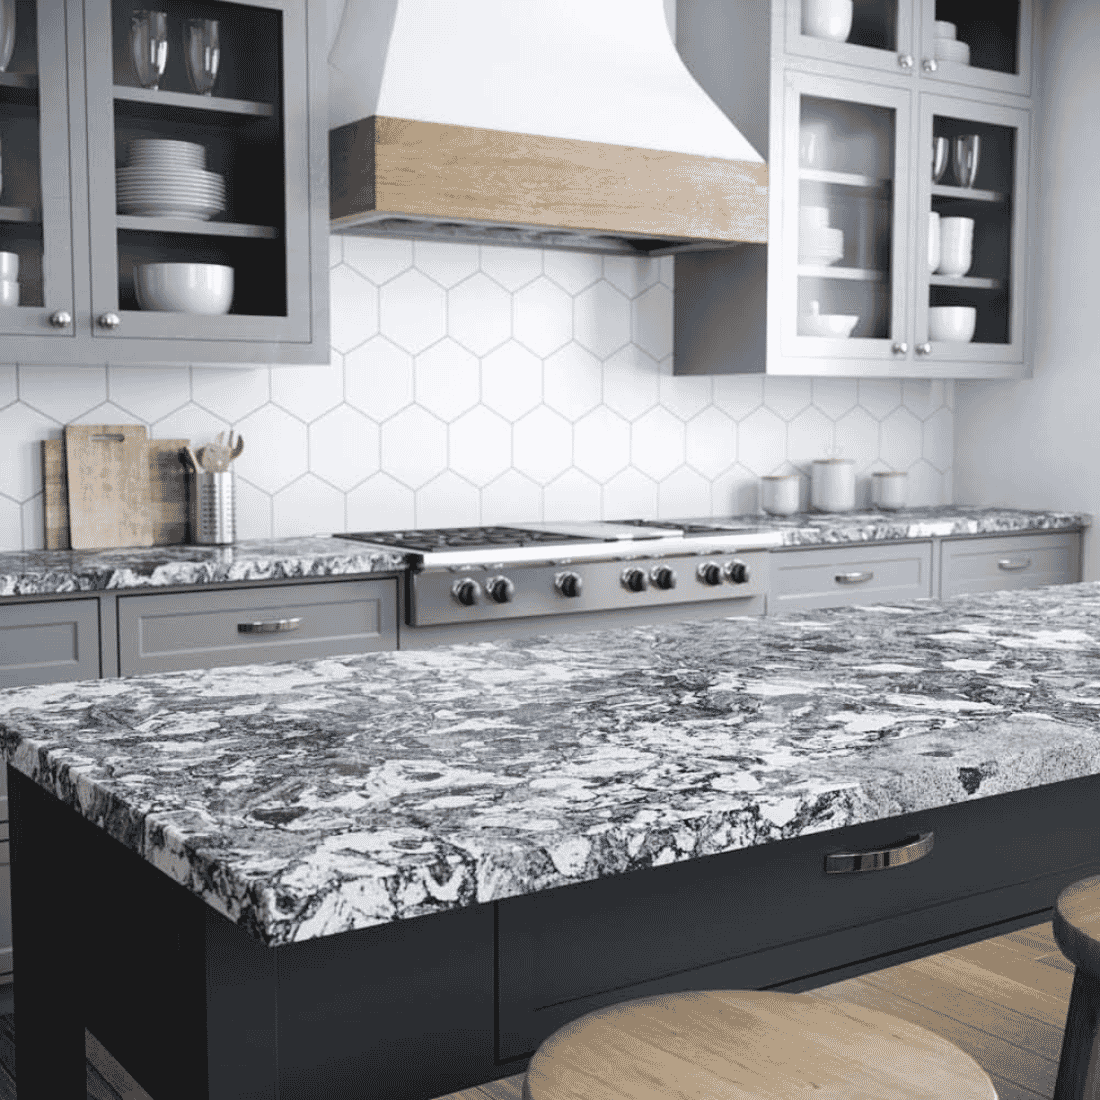 Islington Cambria Quartz Countertops, Cost, Reviews